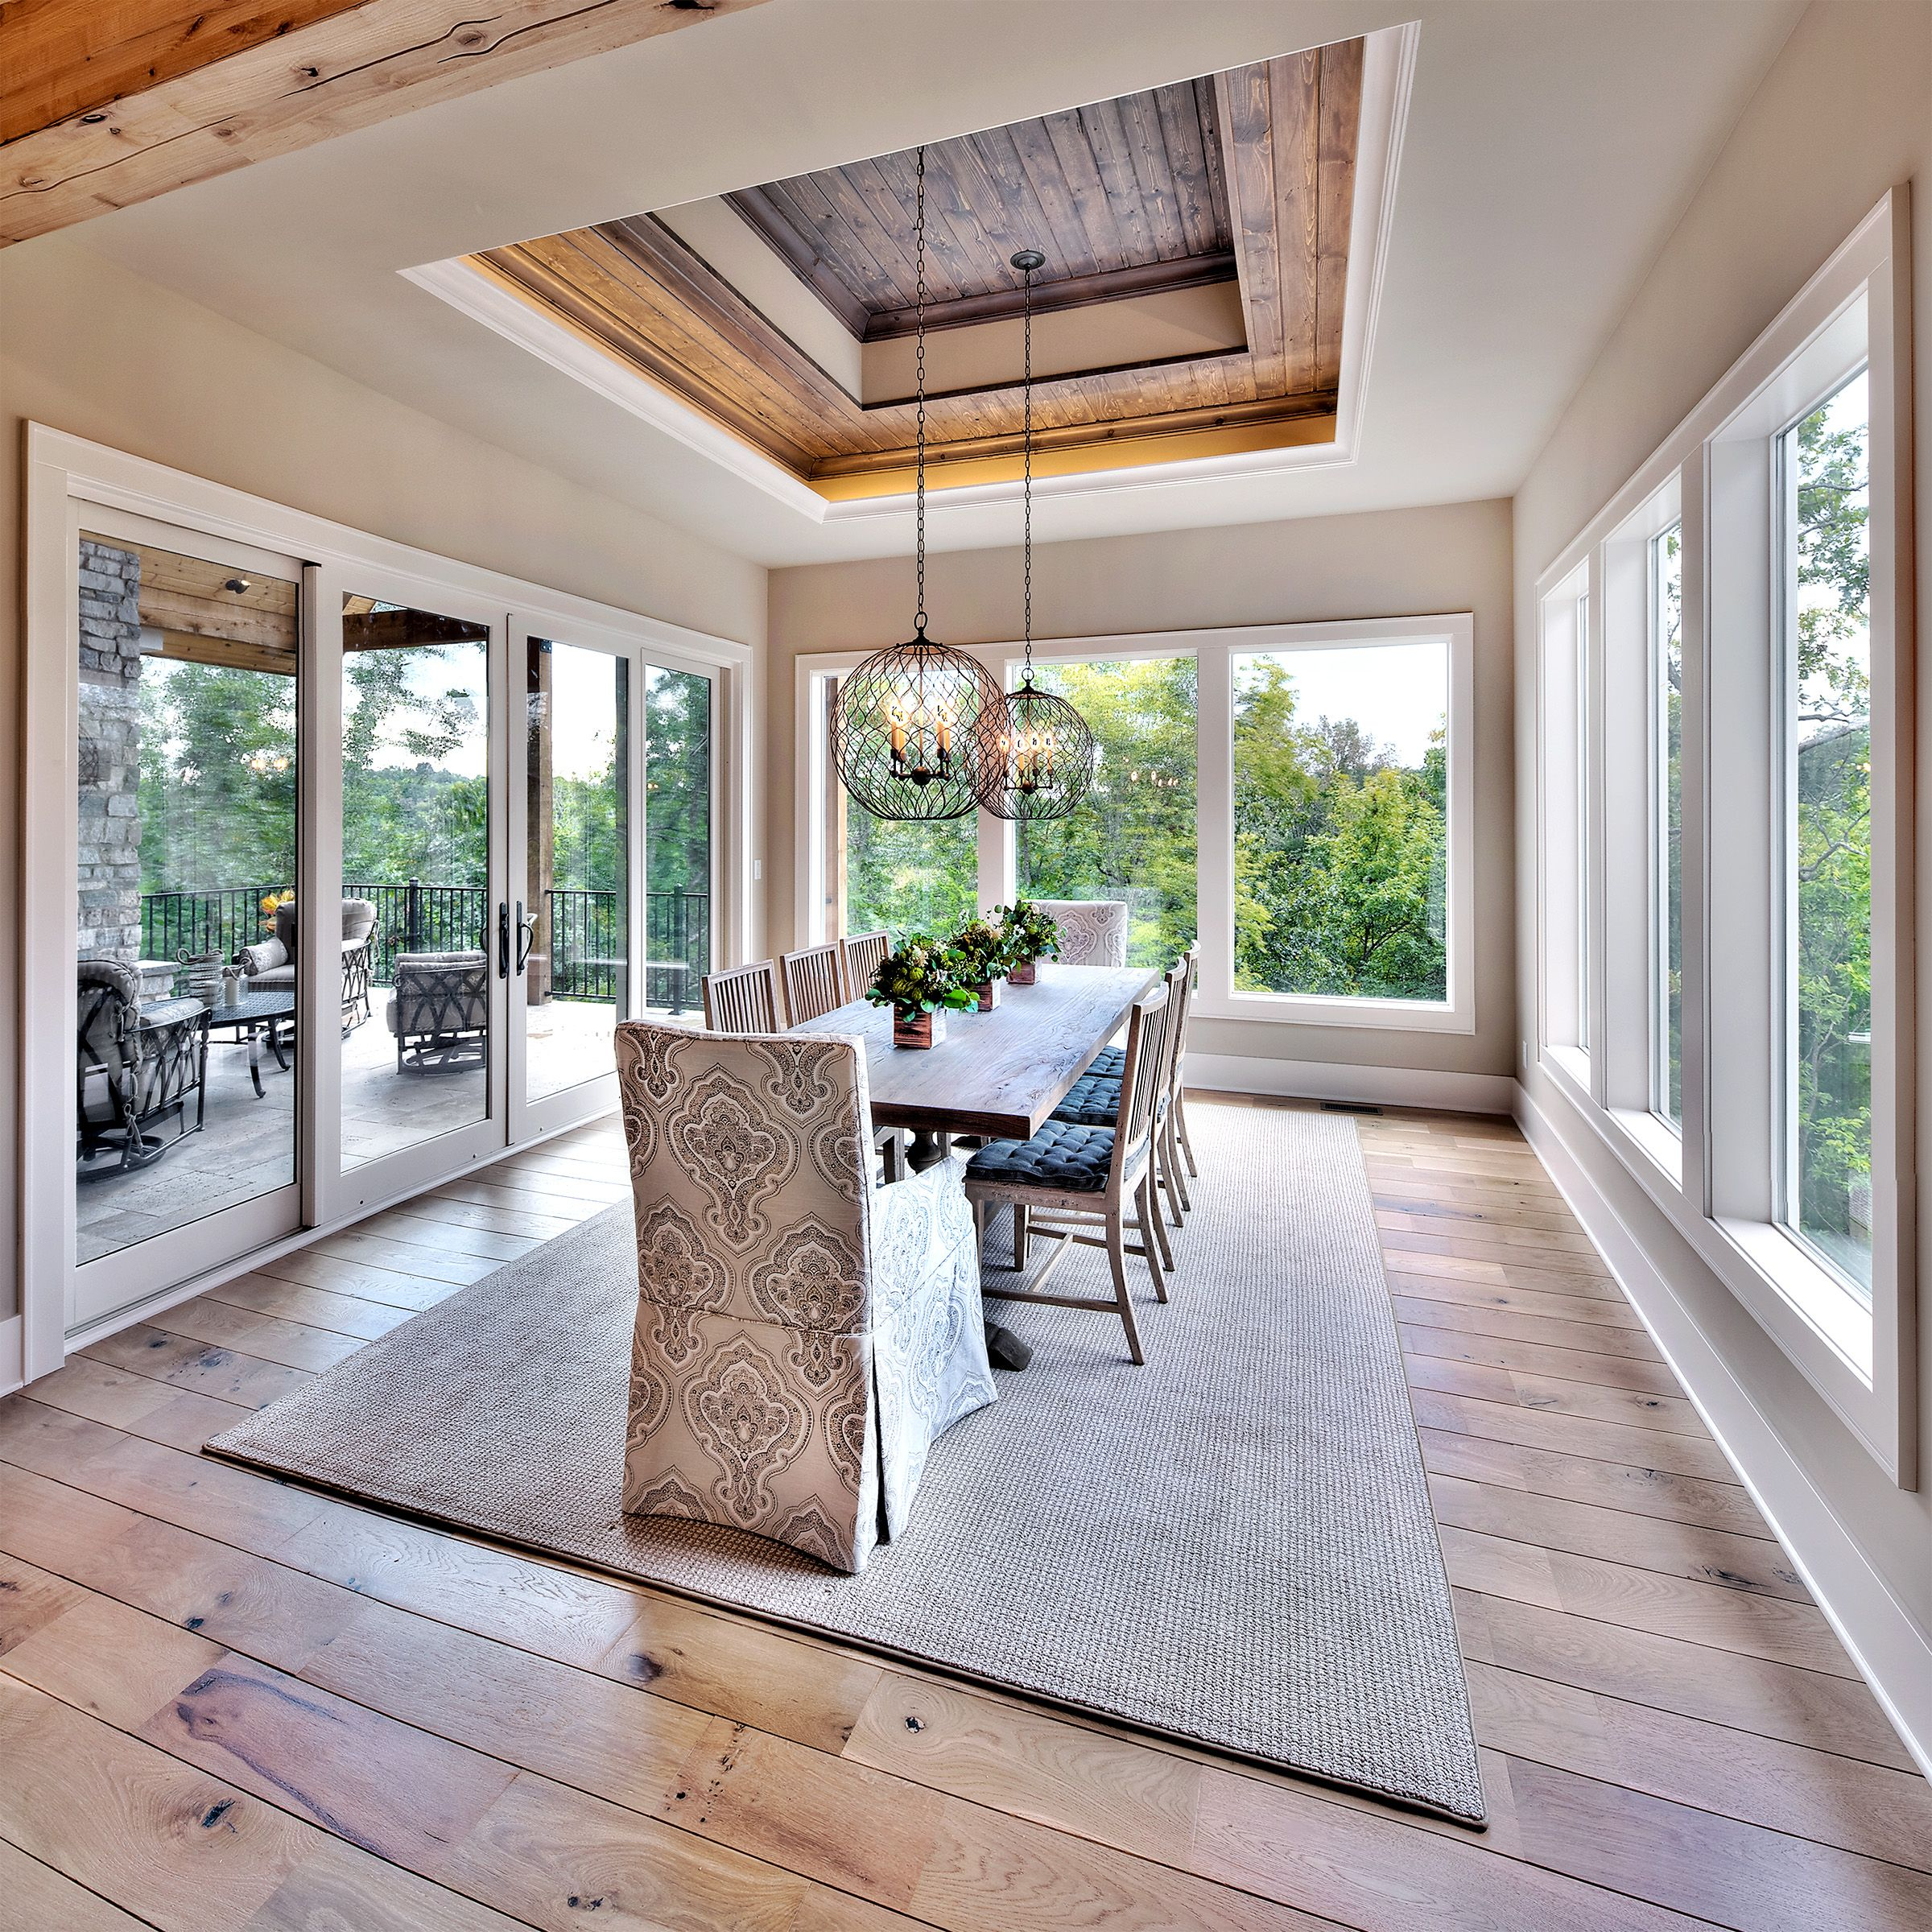 Dining area pendant lights hardwood floors surrounded by large